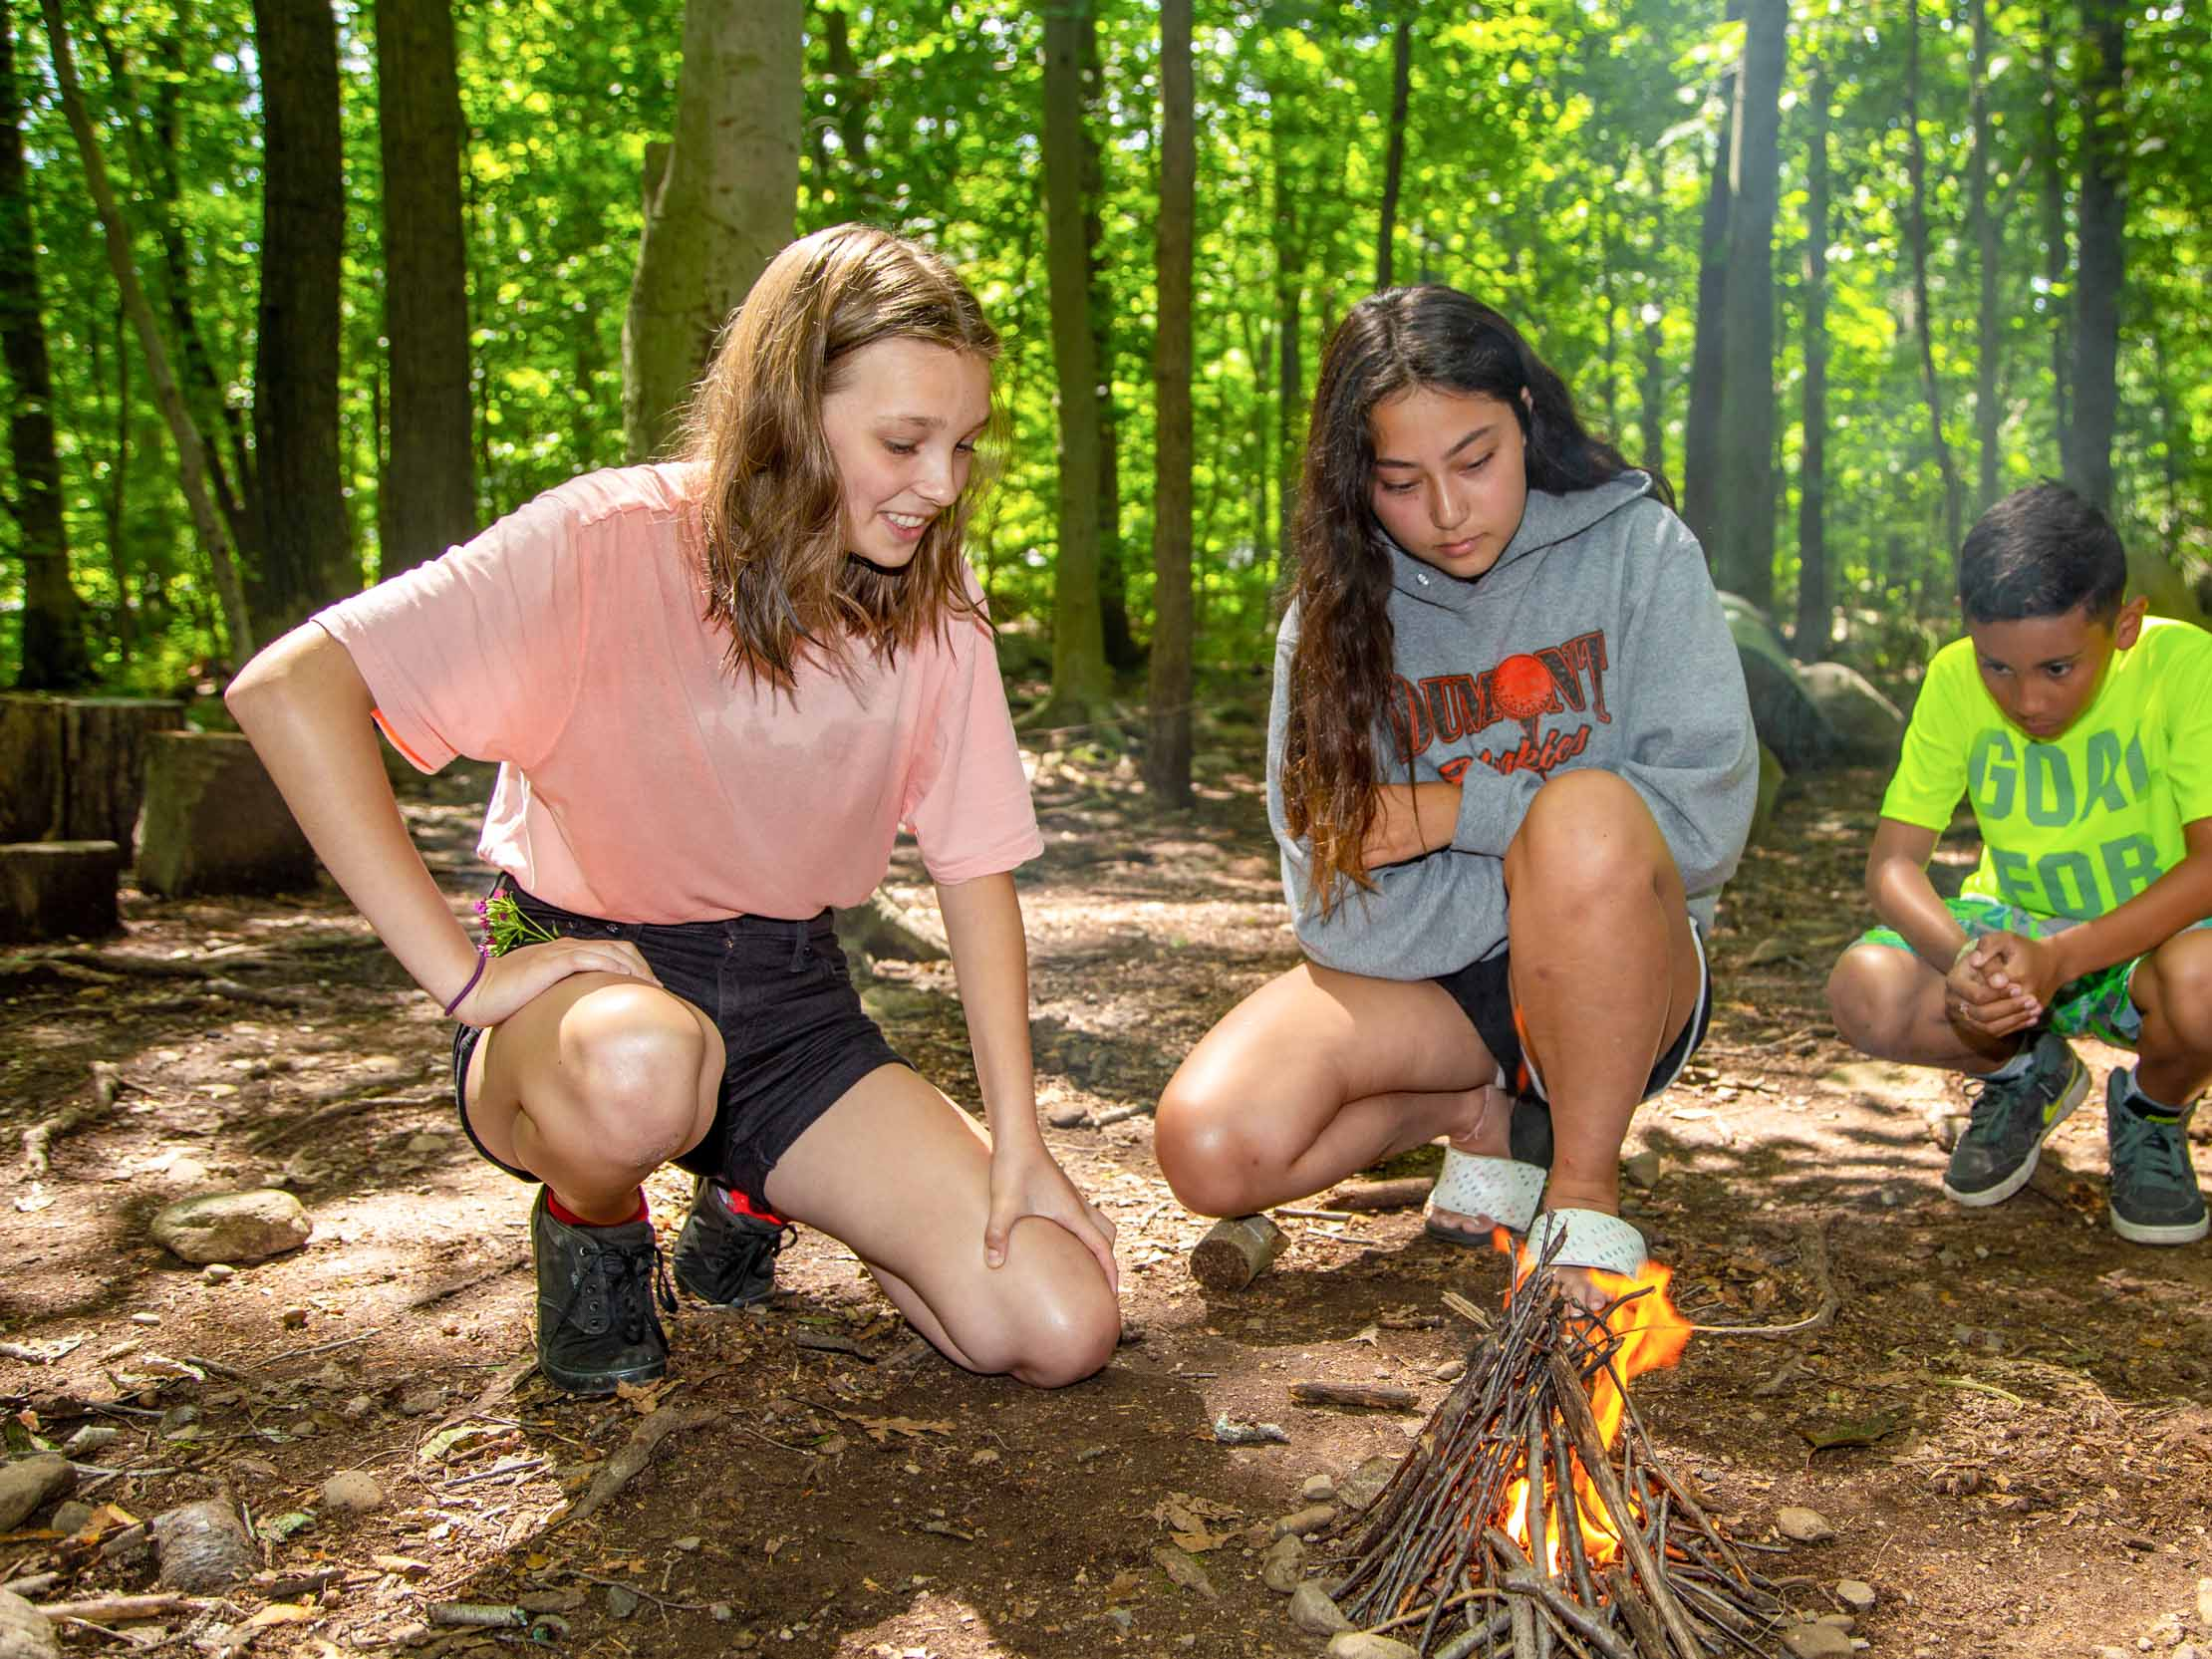 Campers starting a fire